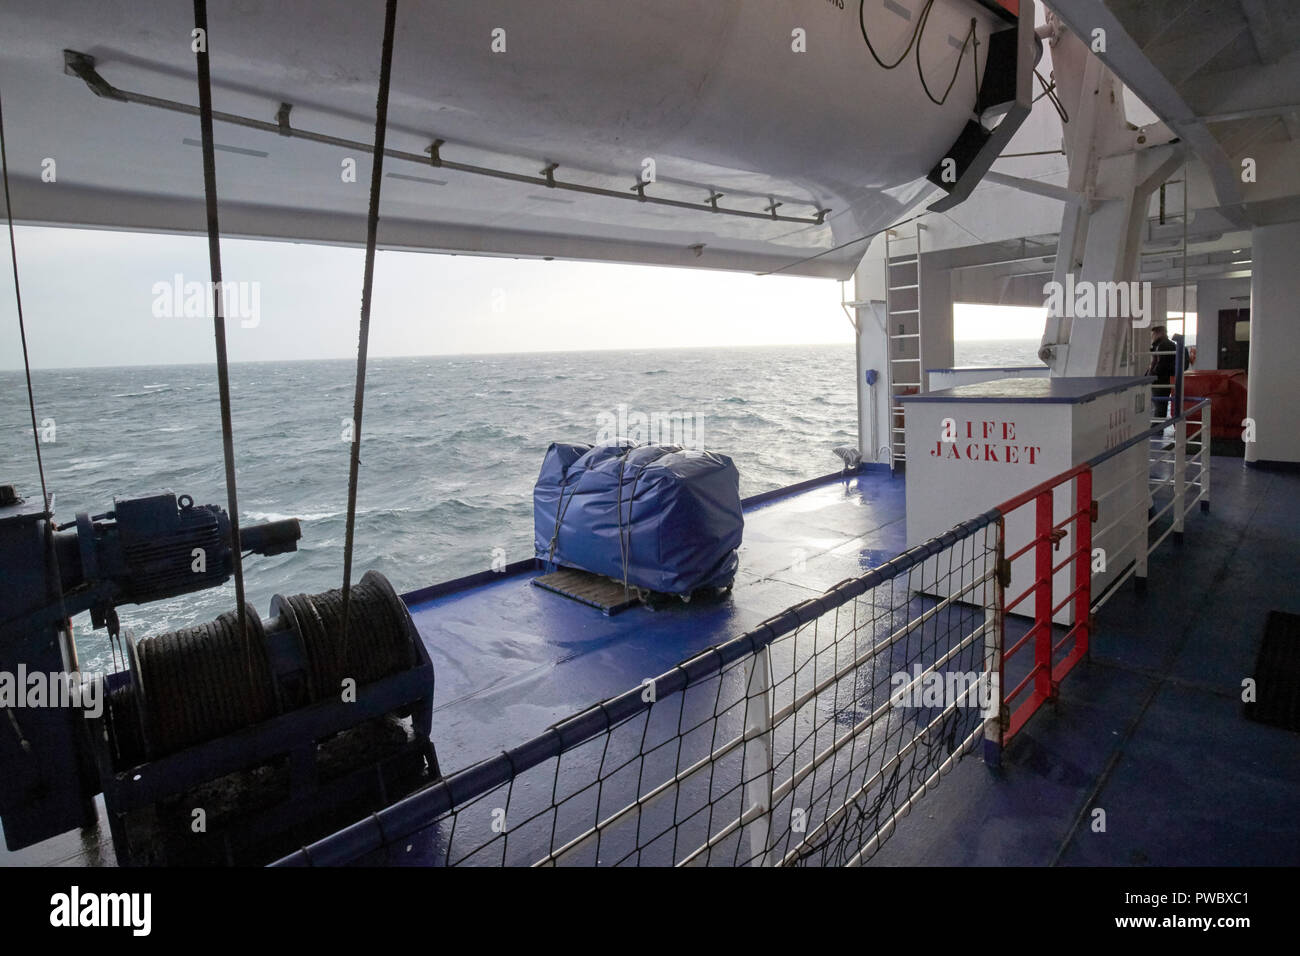 life jackets and lifeboat at muster station on stena line ferry making rough irish sea crossing during storm - Stock Image